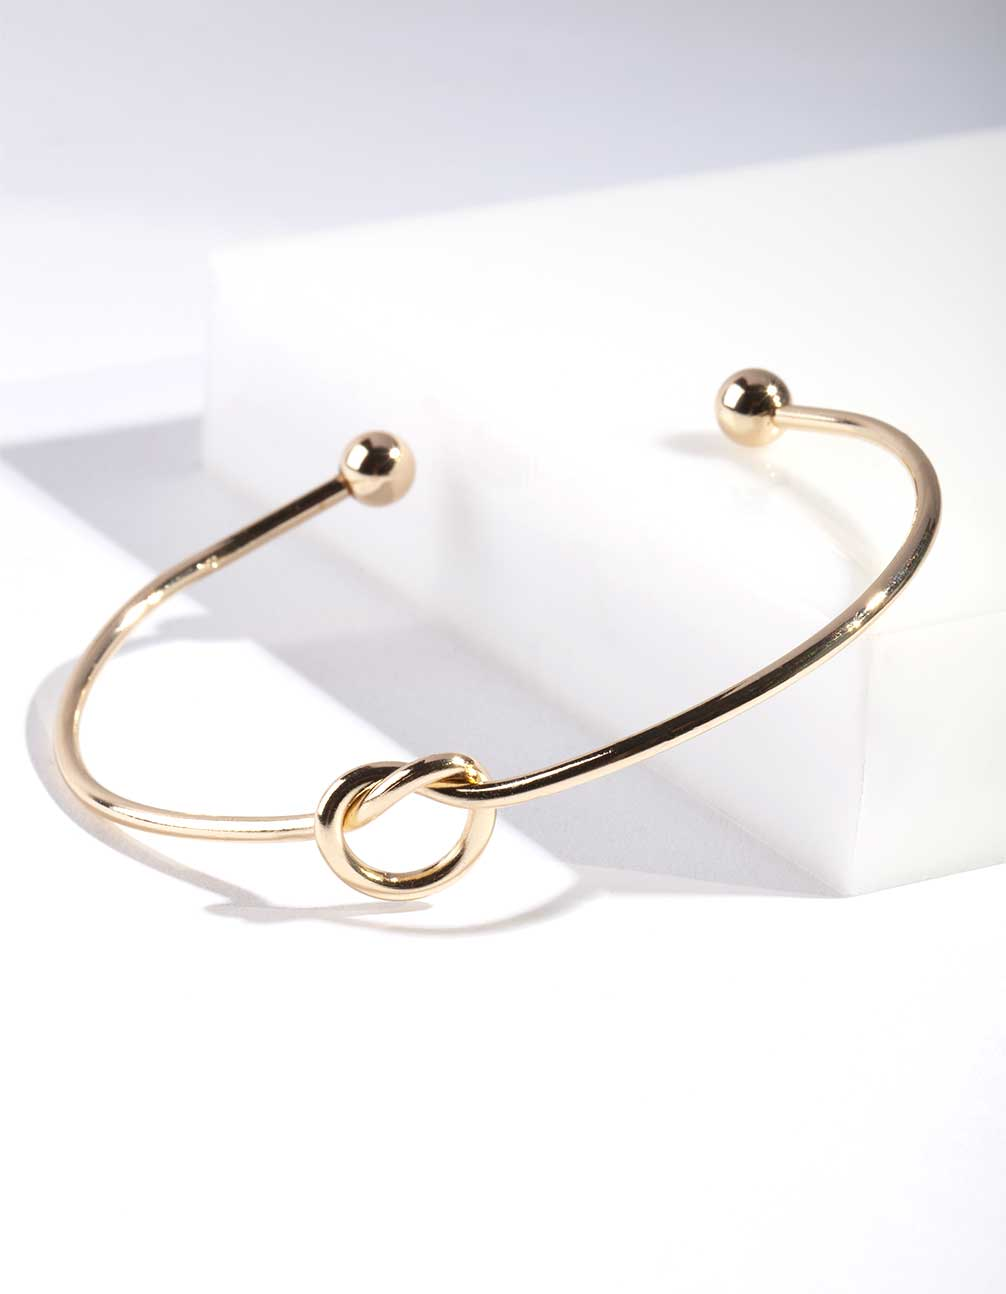 Fine Gold Knotted Open Cuff